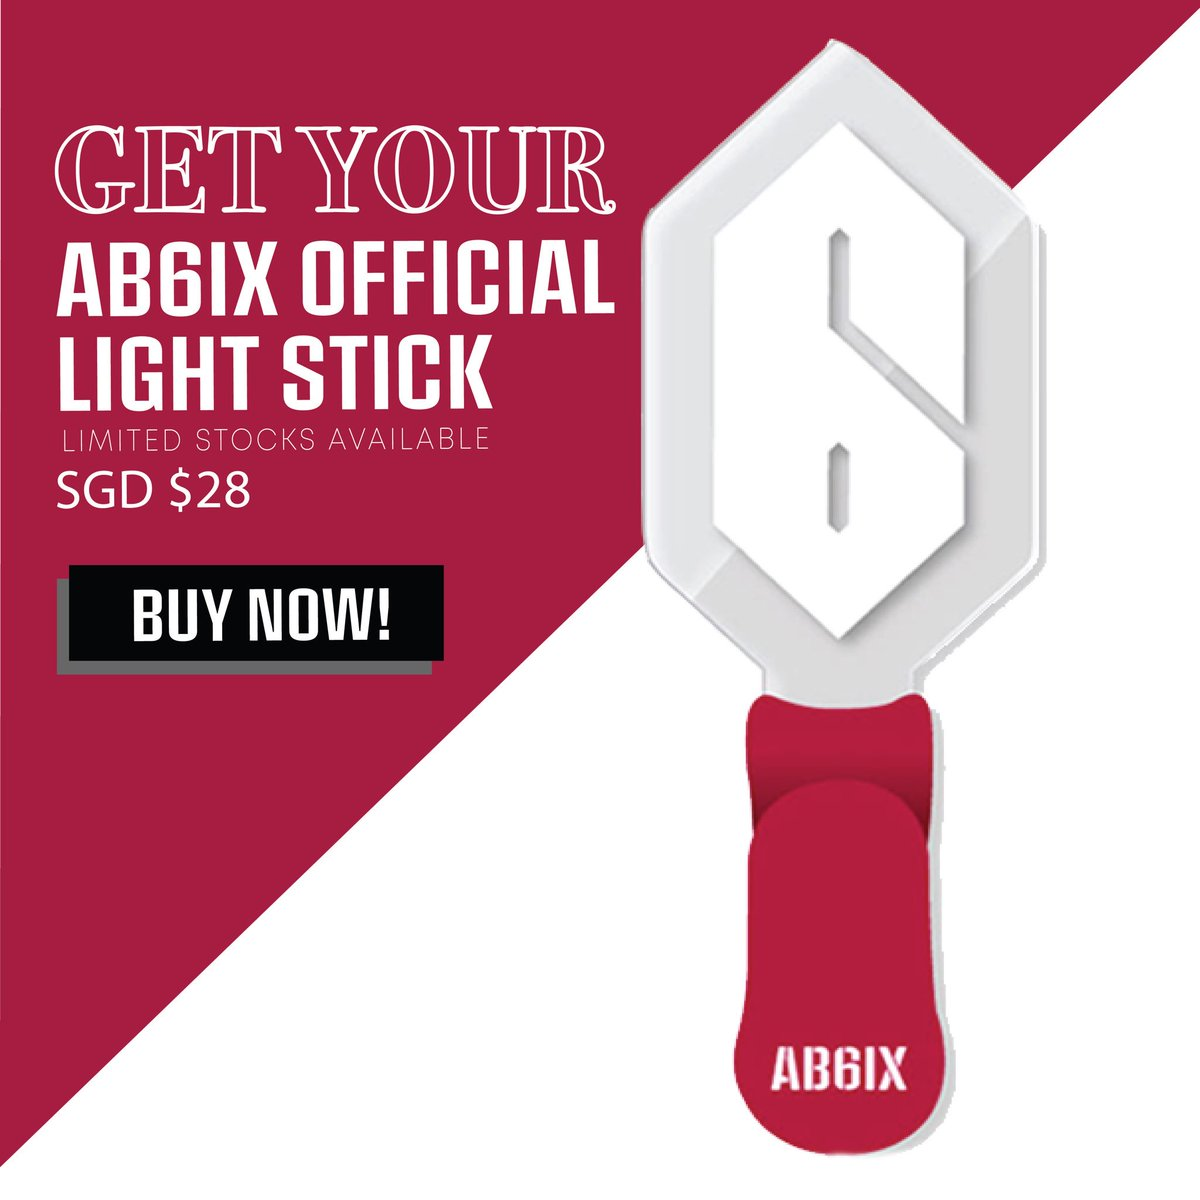 OFFICIAL D-10 TO #AB6IX 1st Fanmeeting [1ST ABNEW] in Singapore! ABNEWs! Have you gotten your AB6IX Official Lightsticks? 😍 Make sure you have them so we can form a AB6IX-sea at The Star Theatre on 27th July! 👇🏻👇🏻👇🏻👇🏻👇🏻 🎫 : apactix.com/events/detail/… 🚨 : bit.ly/AB6IXlightstick